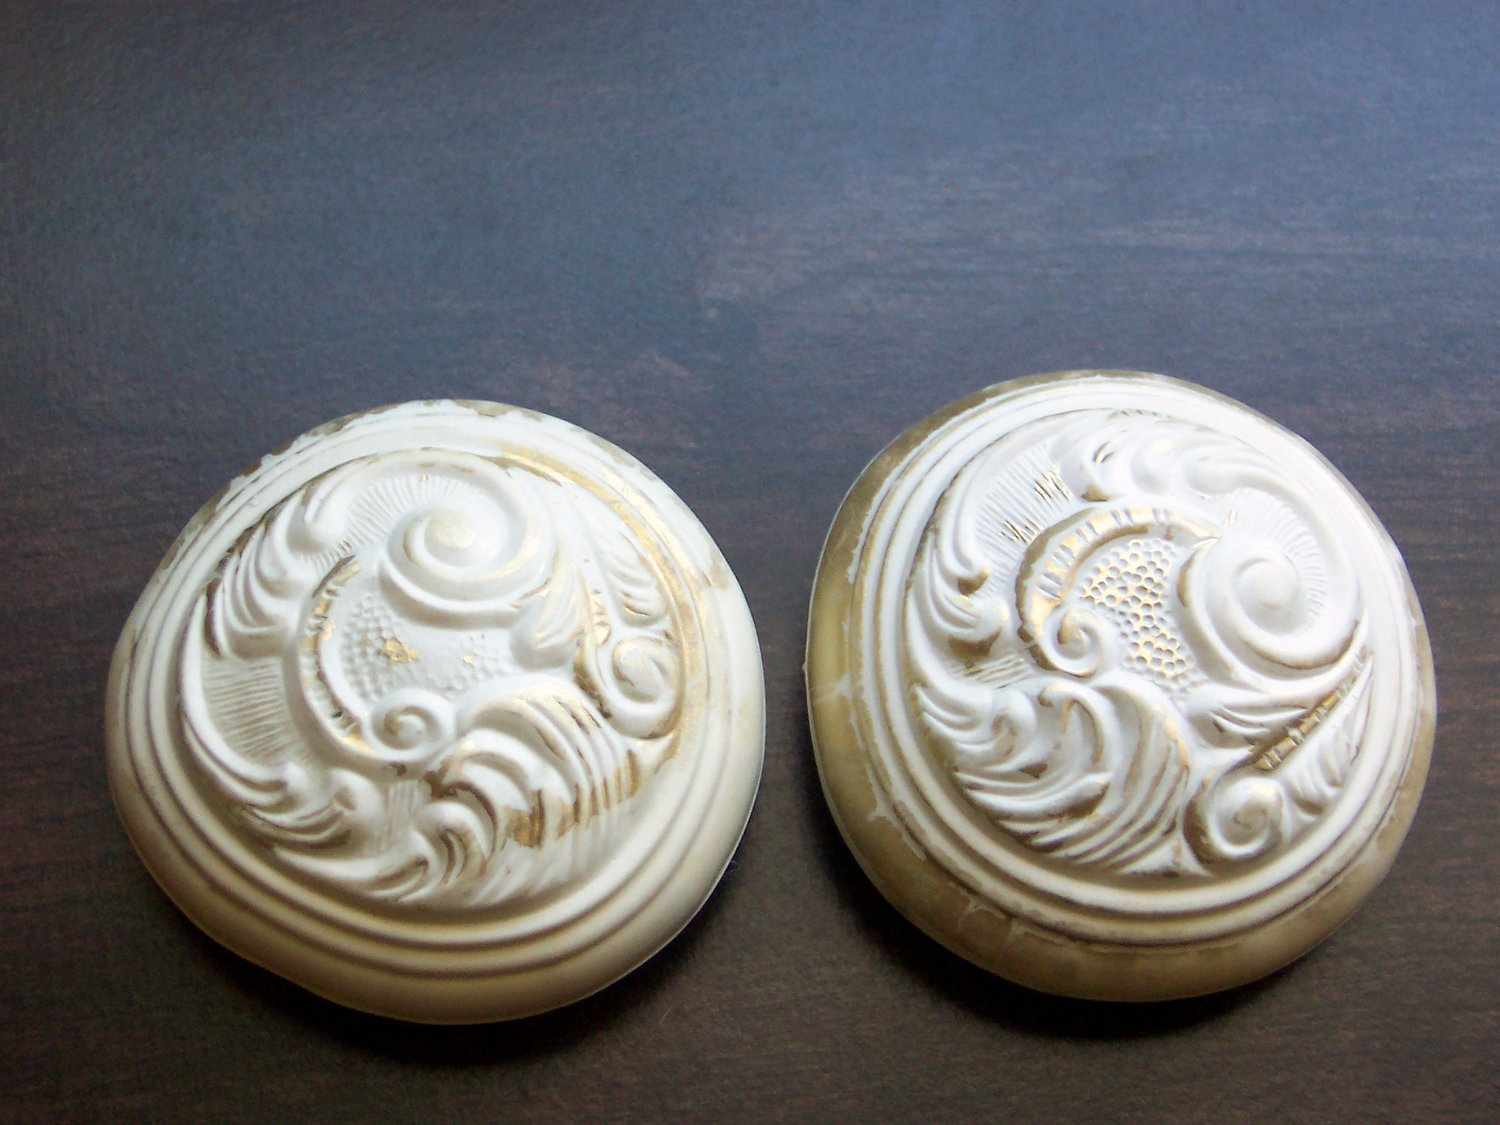 decorative door knob covers photo - 2